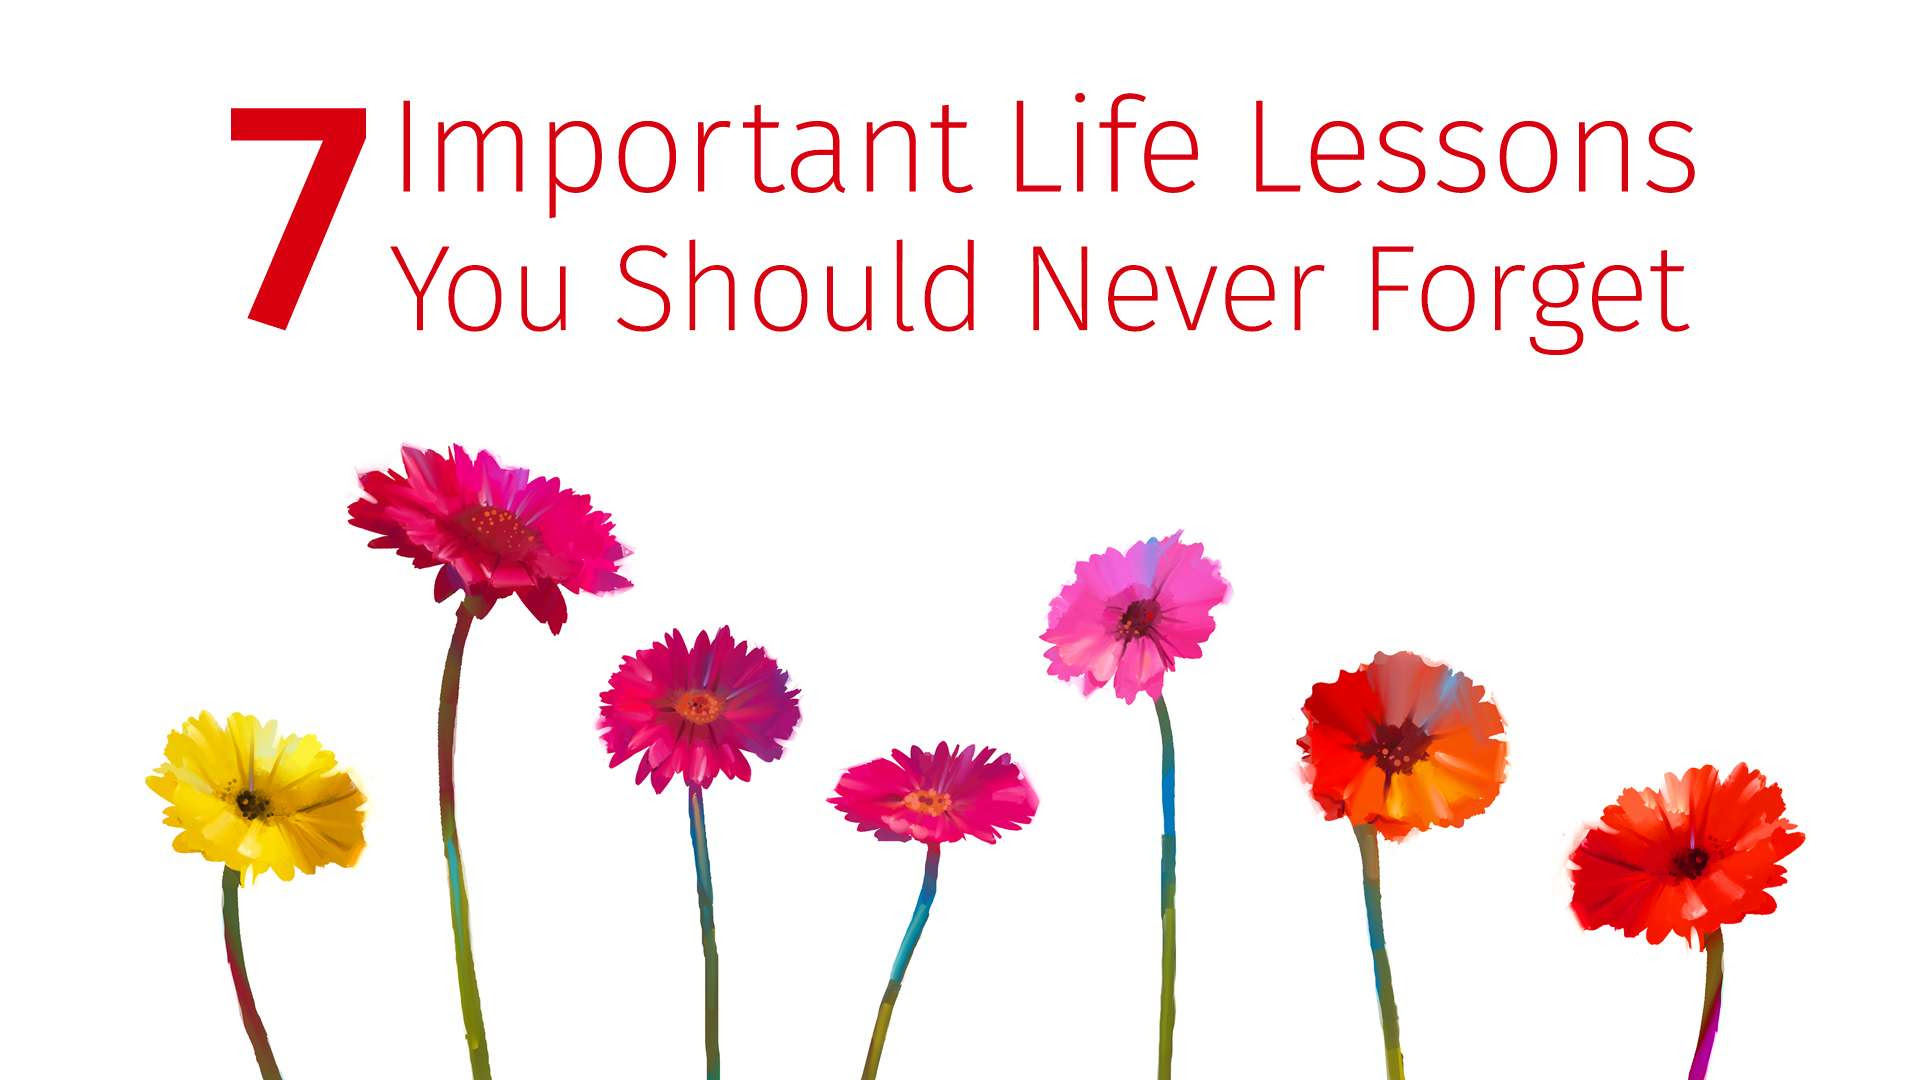 7 Important Life Lessons To Never Forget Isha Sadhguru